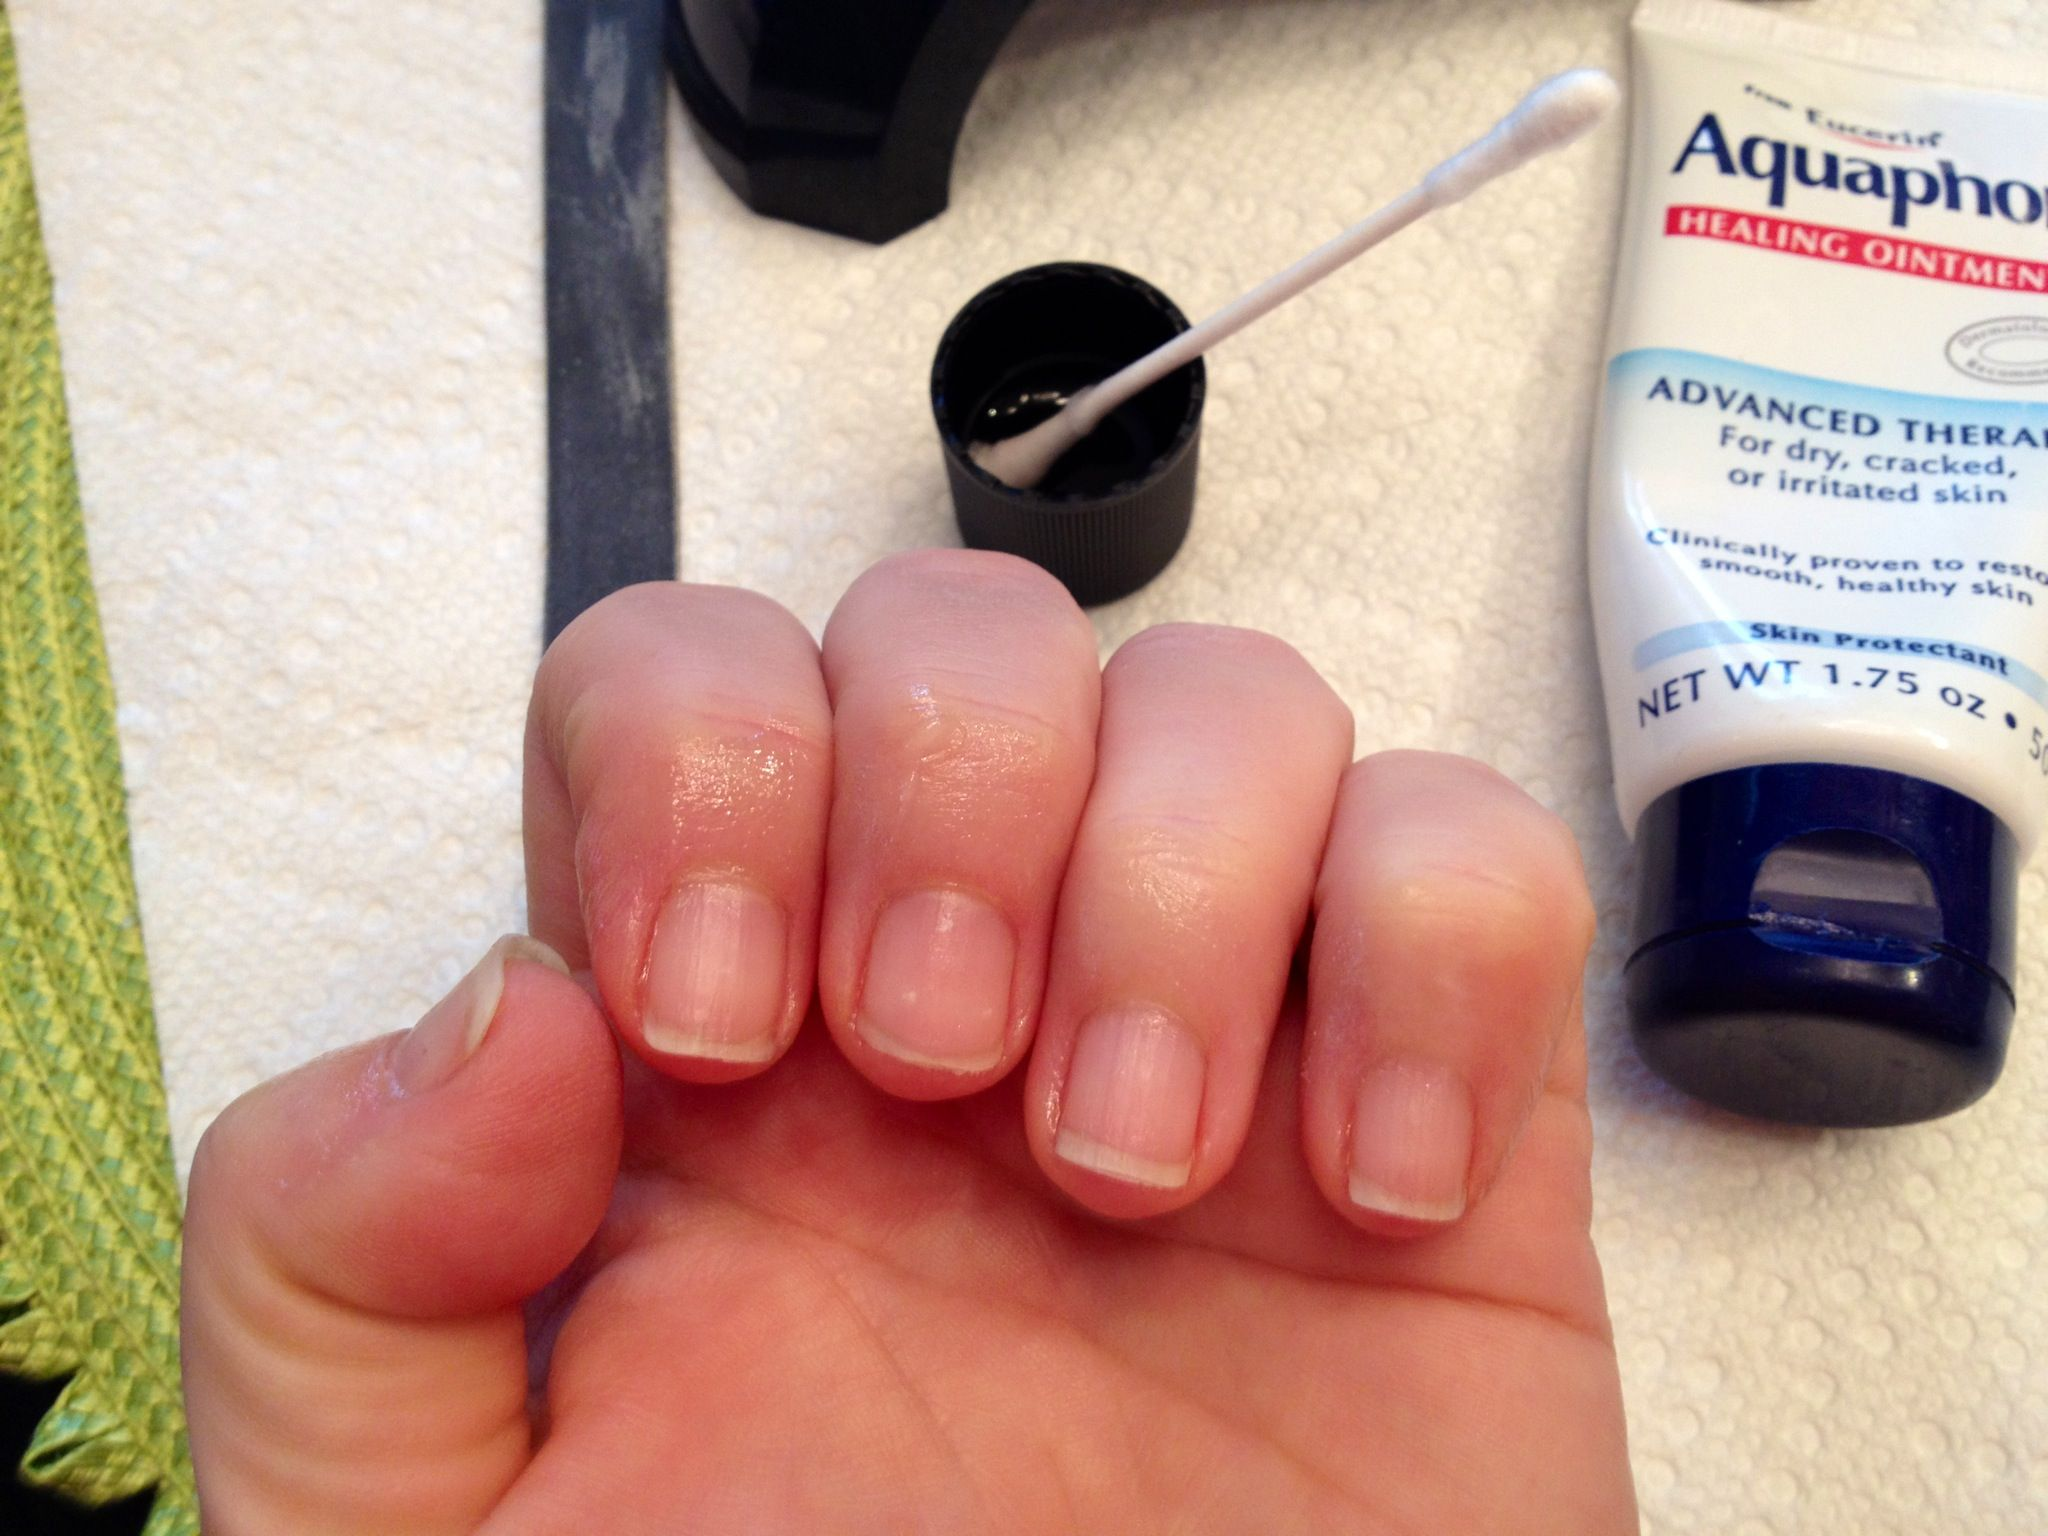 Urbancountrystyle 10 tips for a perfect at home gel manicure urbancountrystyle 10 tips for a perfect at home gel manicure country homes diy solutioingenieria Images